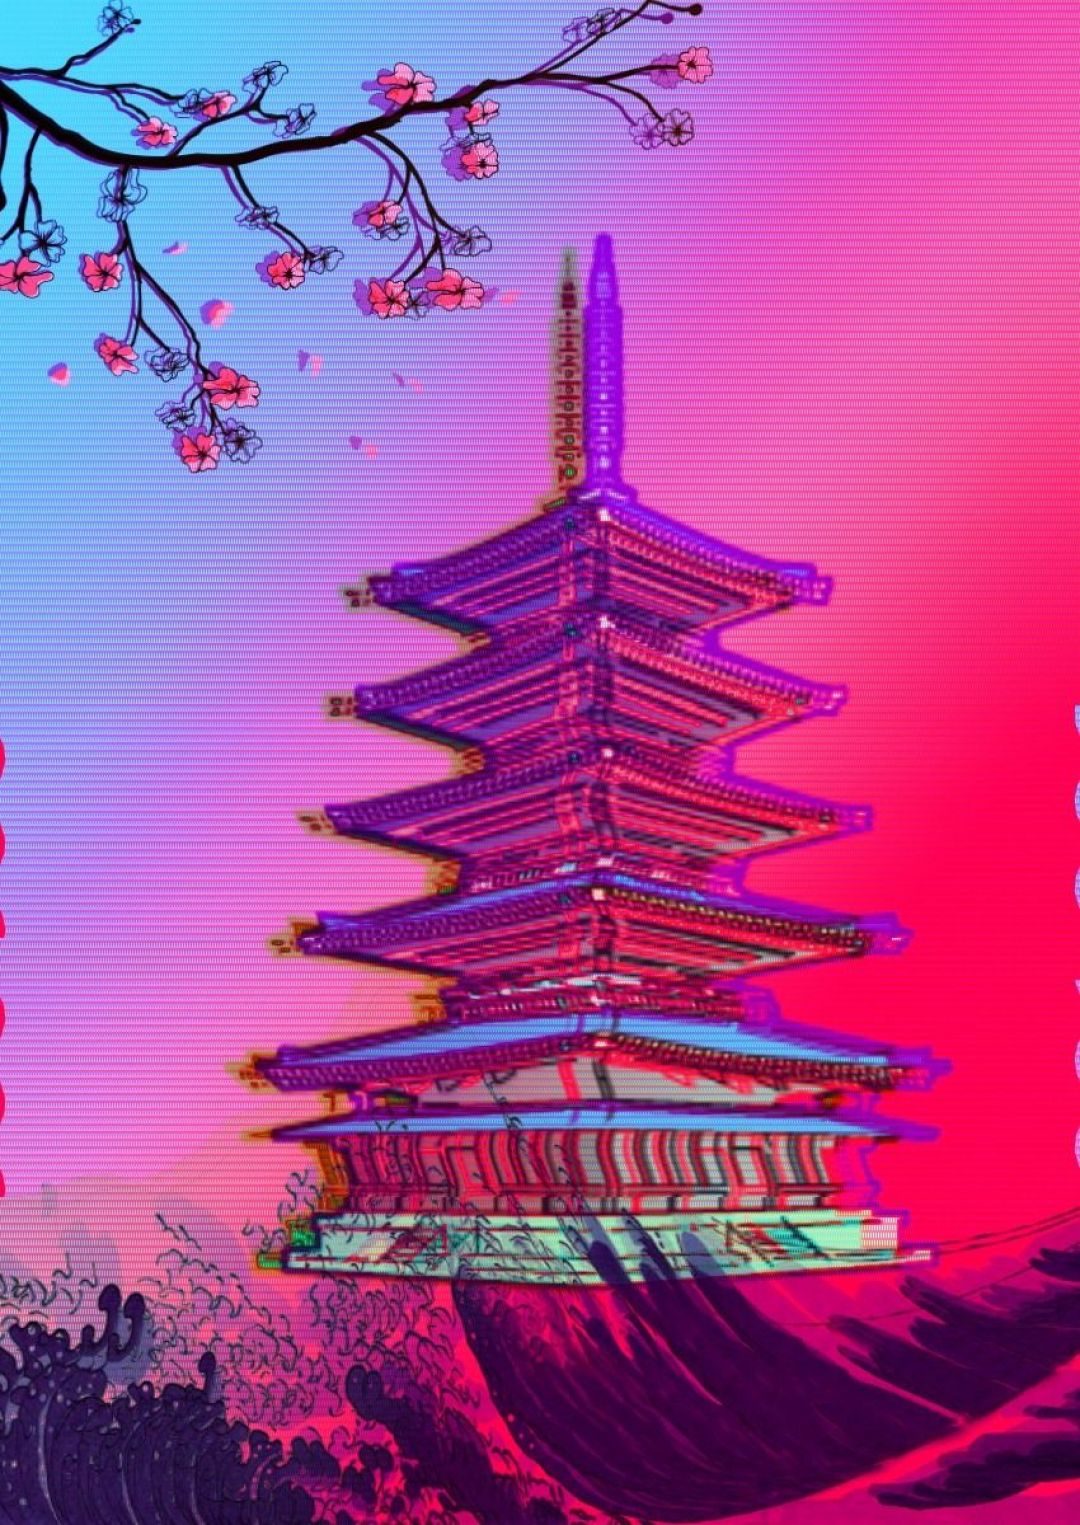 25 Japanese Aesthetic Hd Wallpapers Desktop Background Android Iphone 1080p 4k 1080x1525 2020